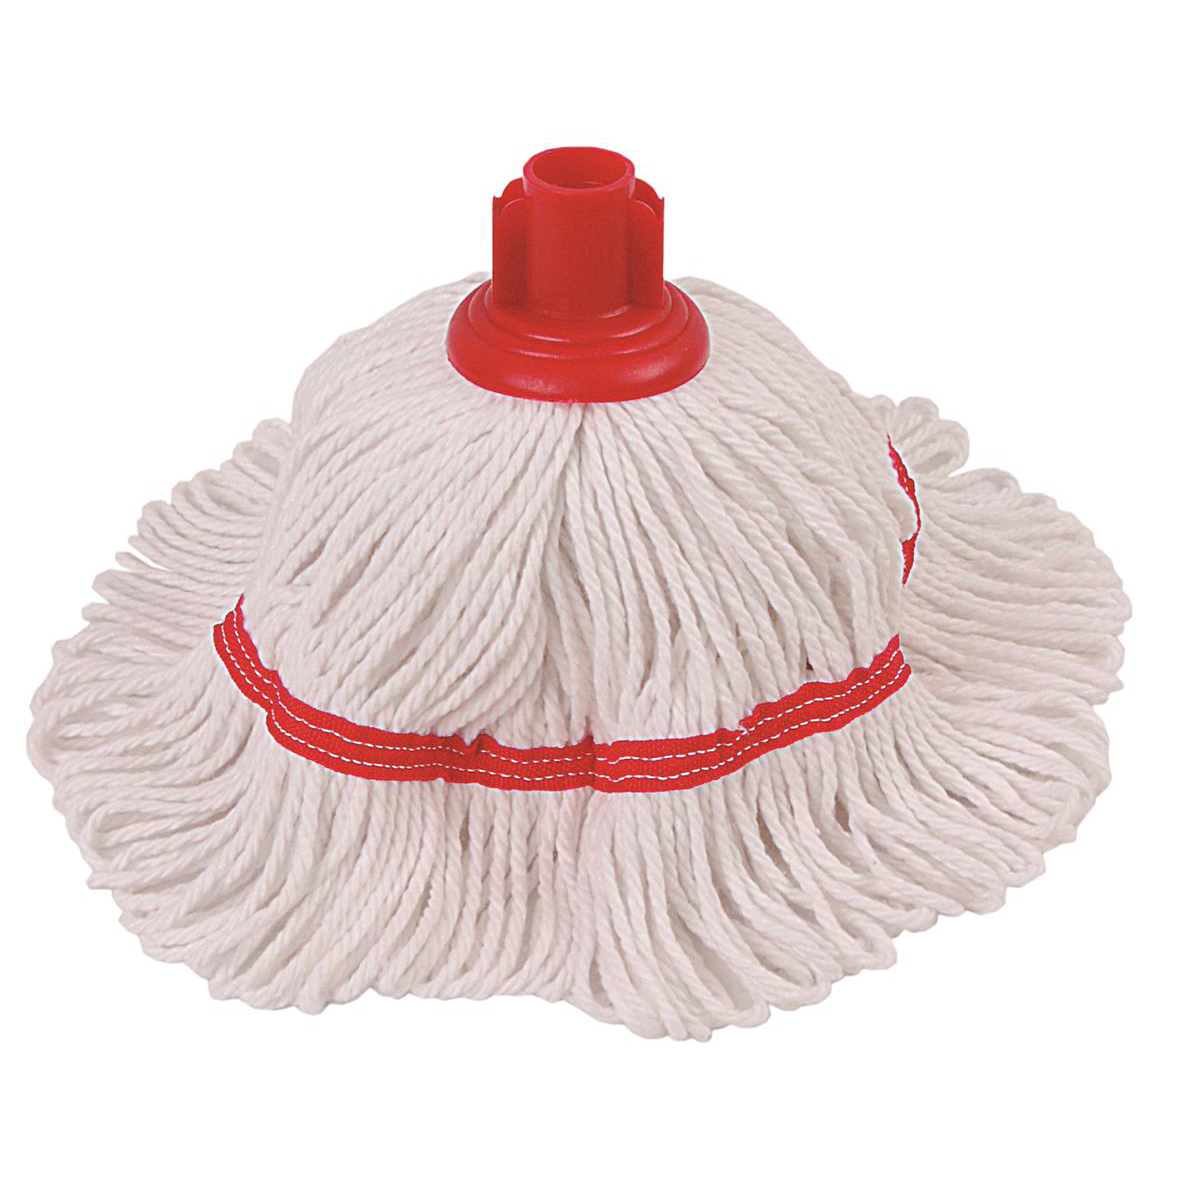 Robert Scott & Sons Hygiemix T1 Socket Cotton & Synthetic Colour-coded Mop 200g Red Ref 103062RED